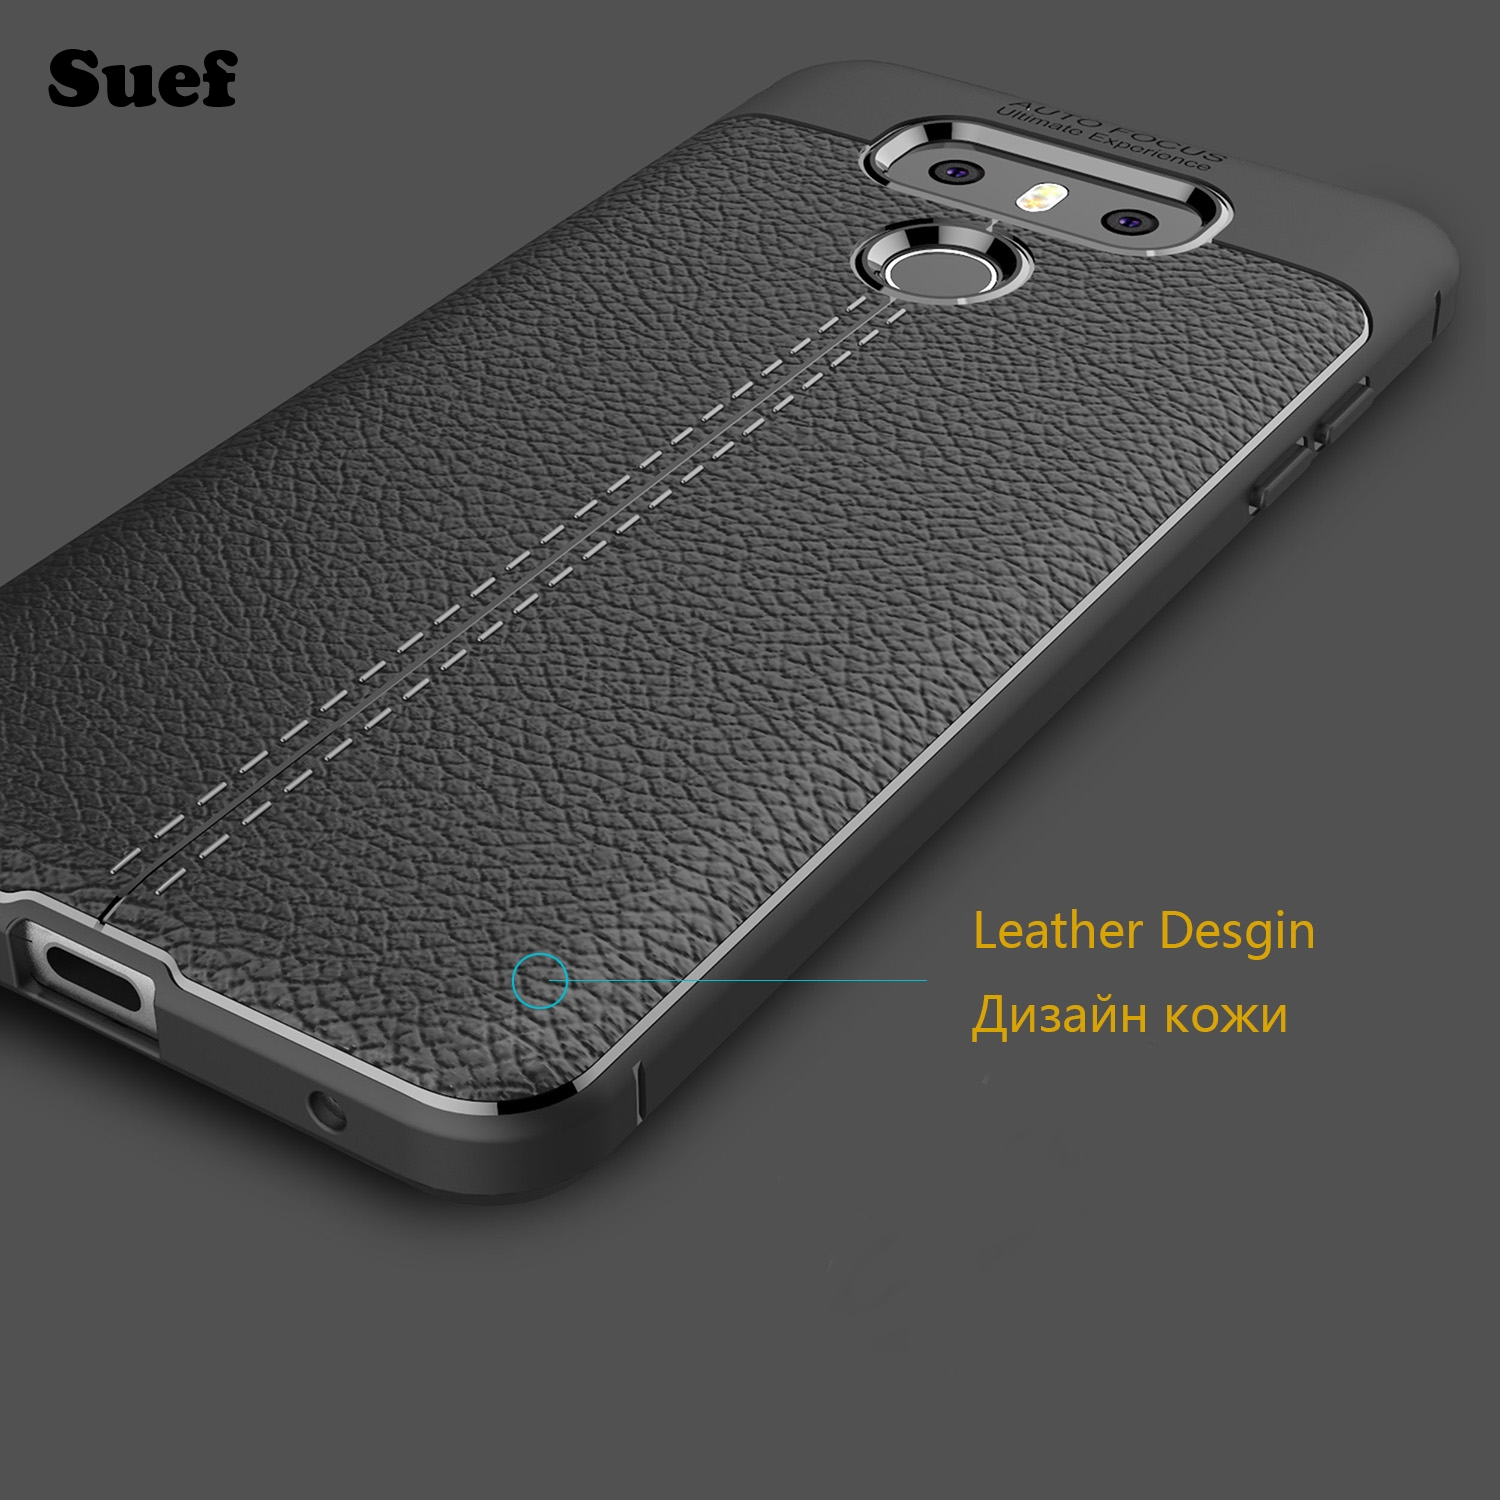 detailed look 4343f 8397b Coque LG G6 Case Cover LG G6 plus Case Silicone LG G6+ H870 H870DS ...